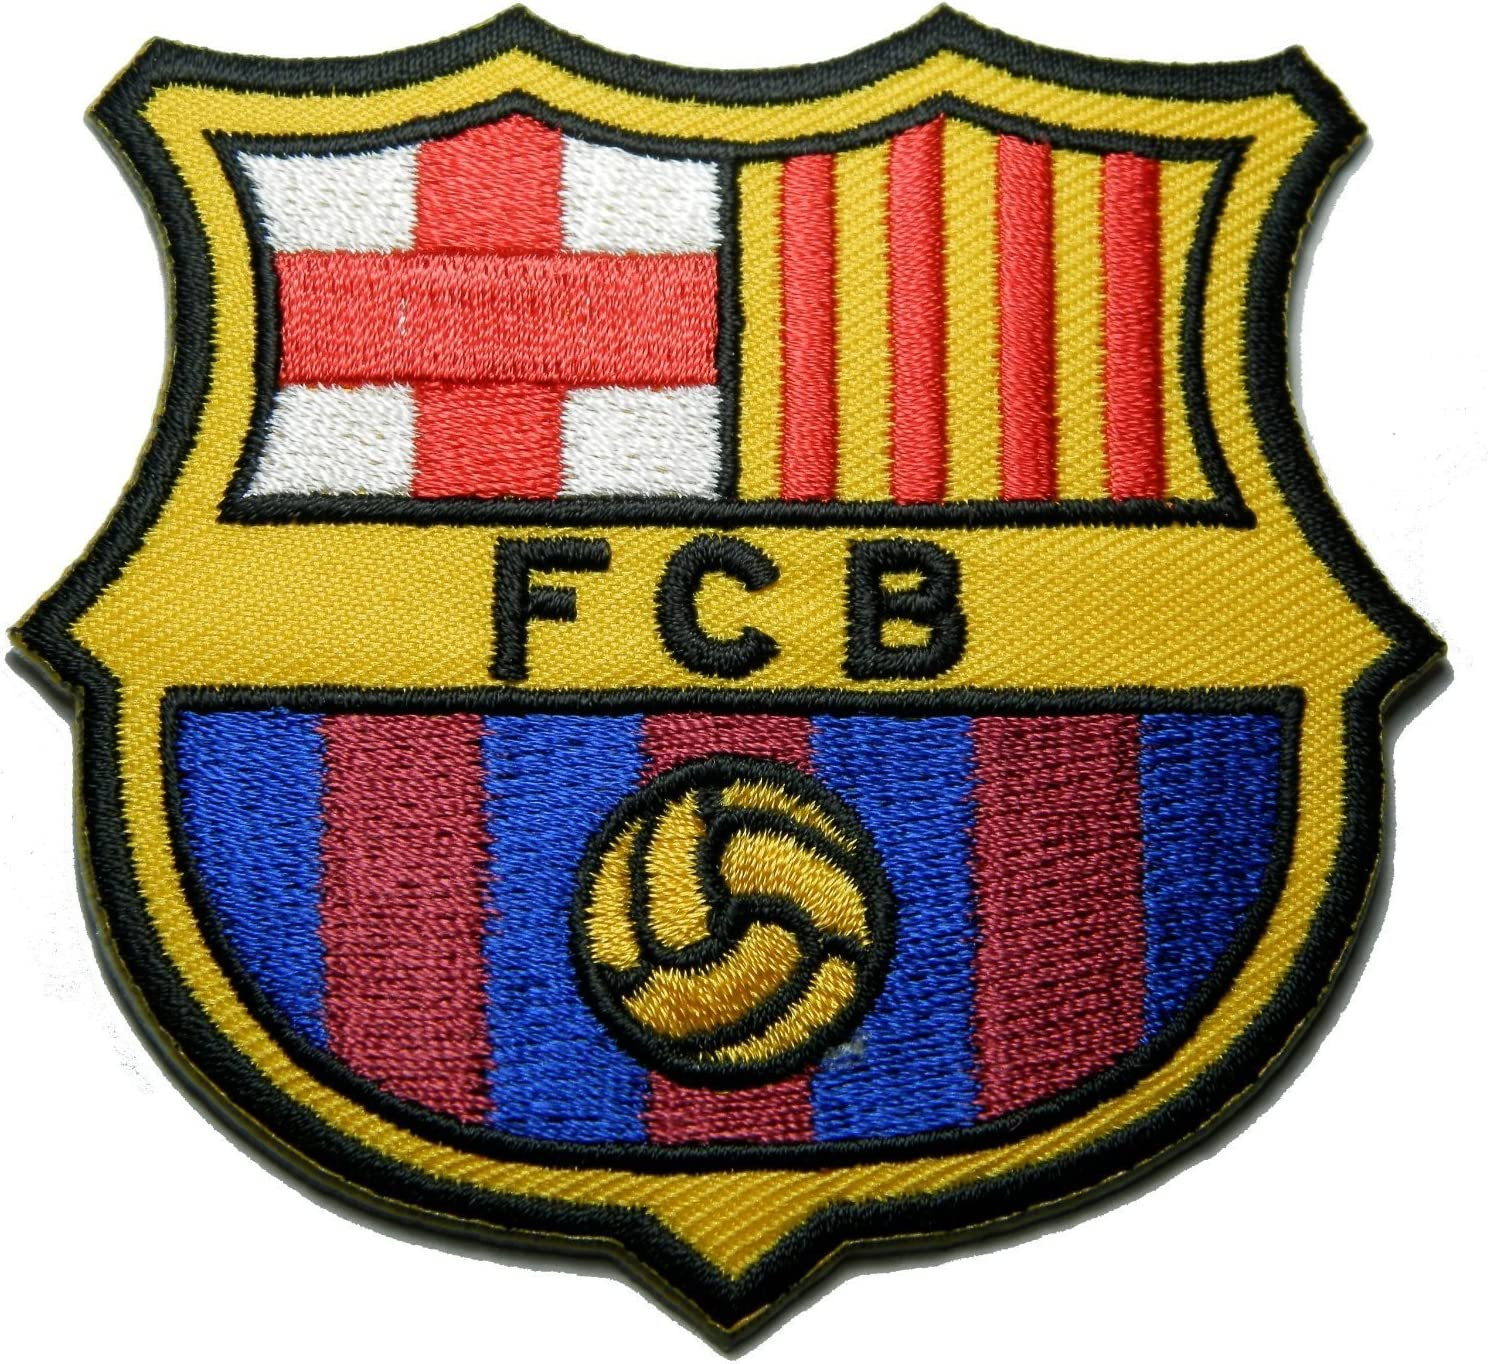 amazon com 1 x fc barcelona futbol football soccer iron on embroidered patch emblem logo badge applique by luk99 arts crafts sewing 1 x fc barcelona futbol football soccer iron on embroidered patch emblem logo badge applique by luk99